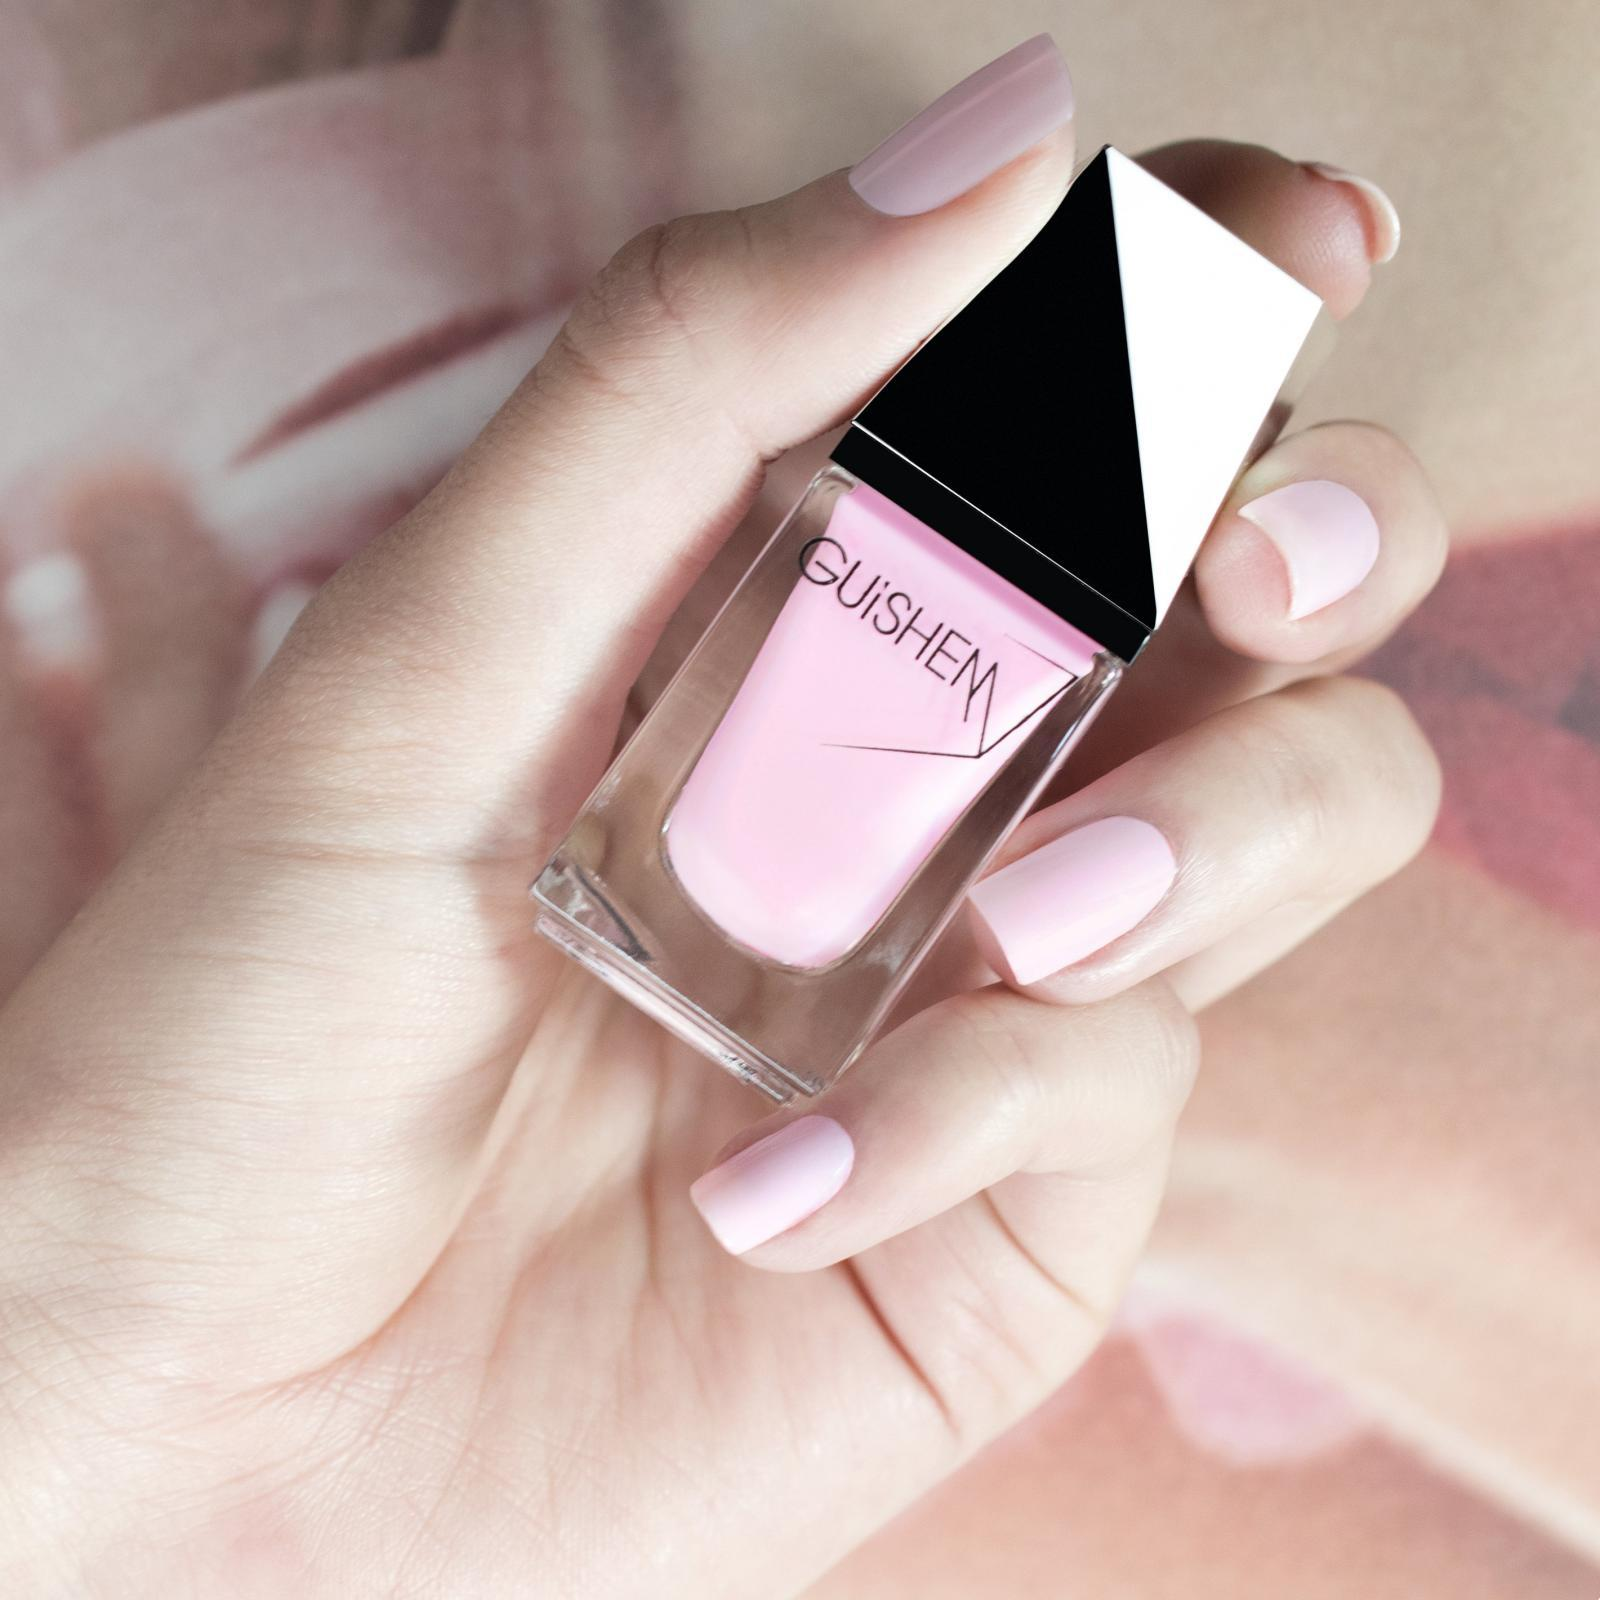 GUiSHEM Premium Nail Lacquer Shimmer Rose Sheer, In Love - 030